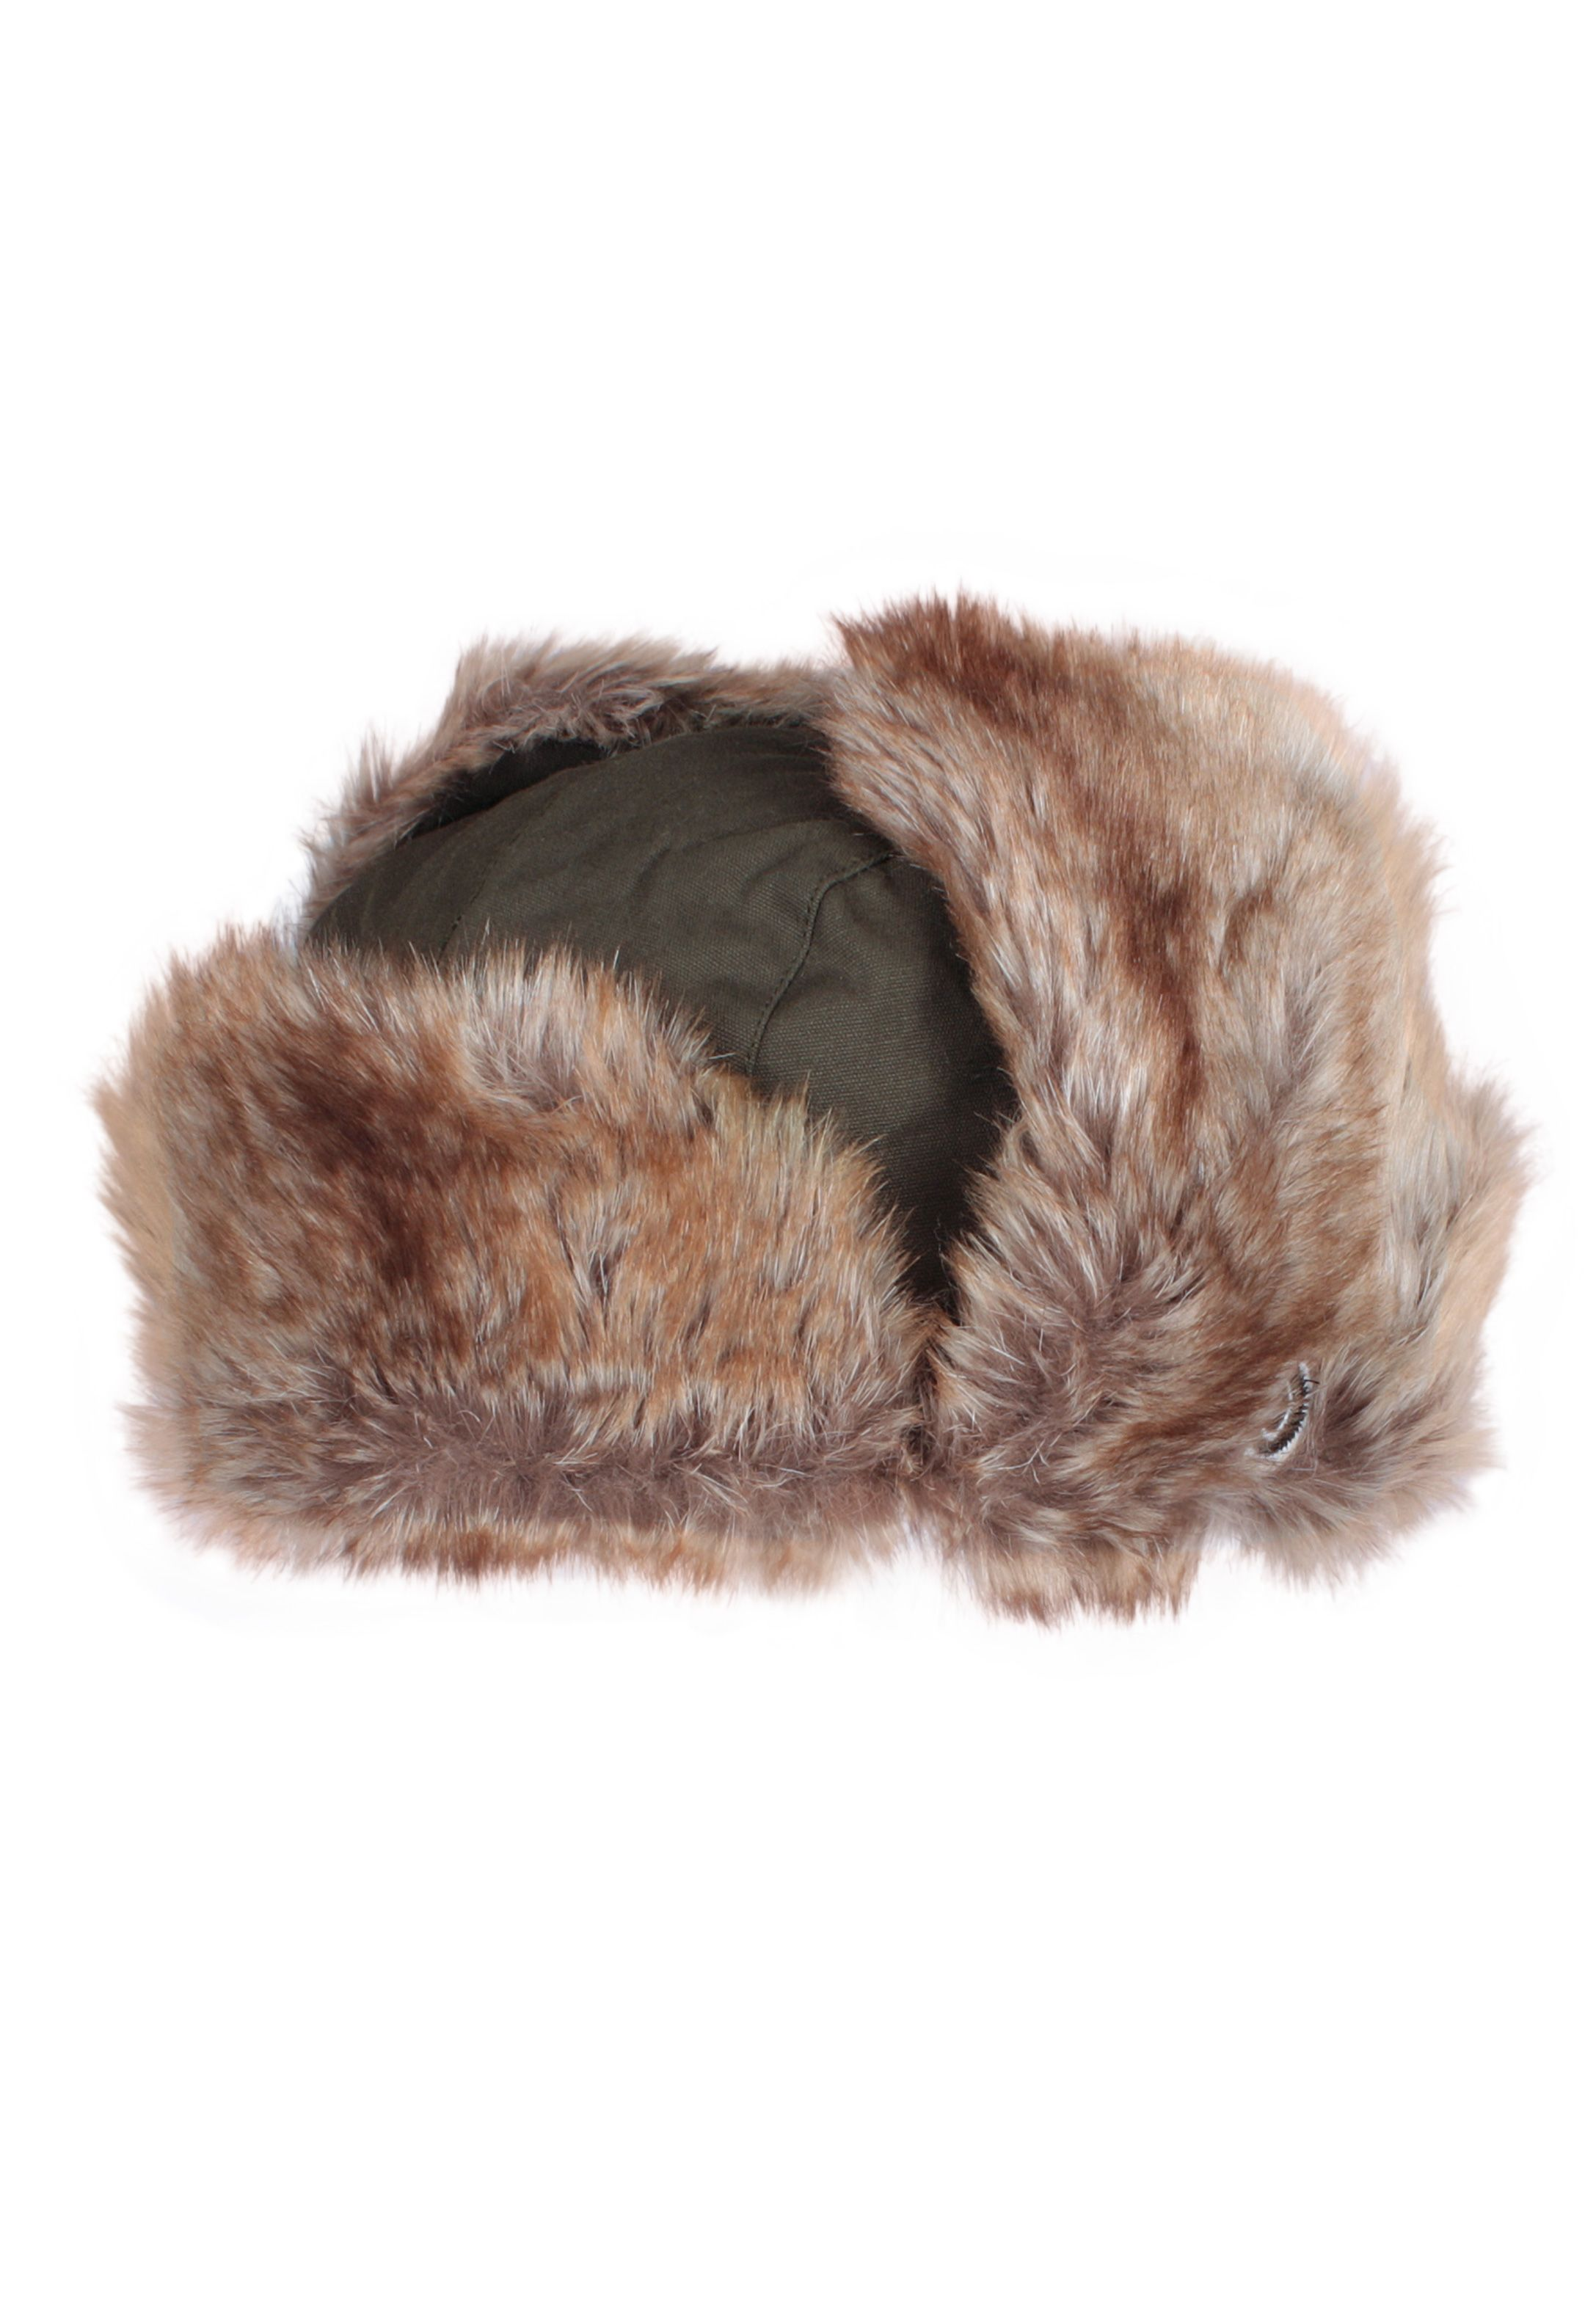 5a42c2976fc Japanese Style Trapper Hat - Faux Fur Bomber Russian Hat Ushanka Mens  Womens Unisex Japan Kawaii